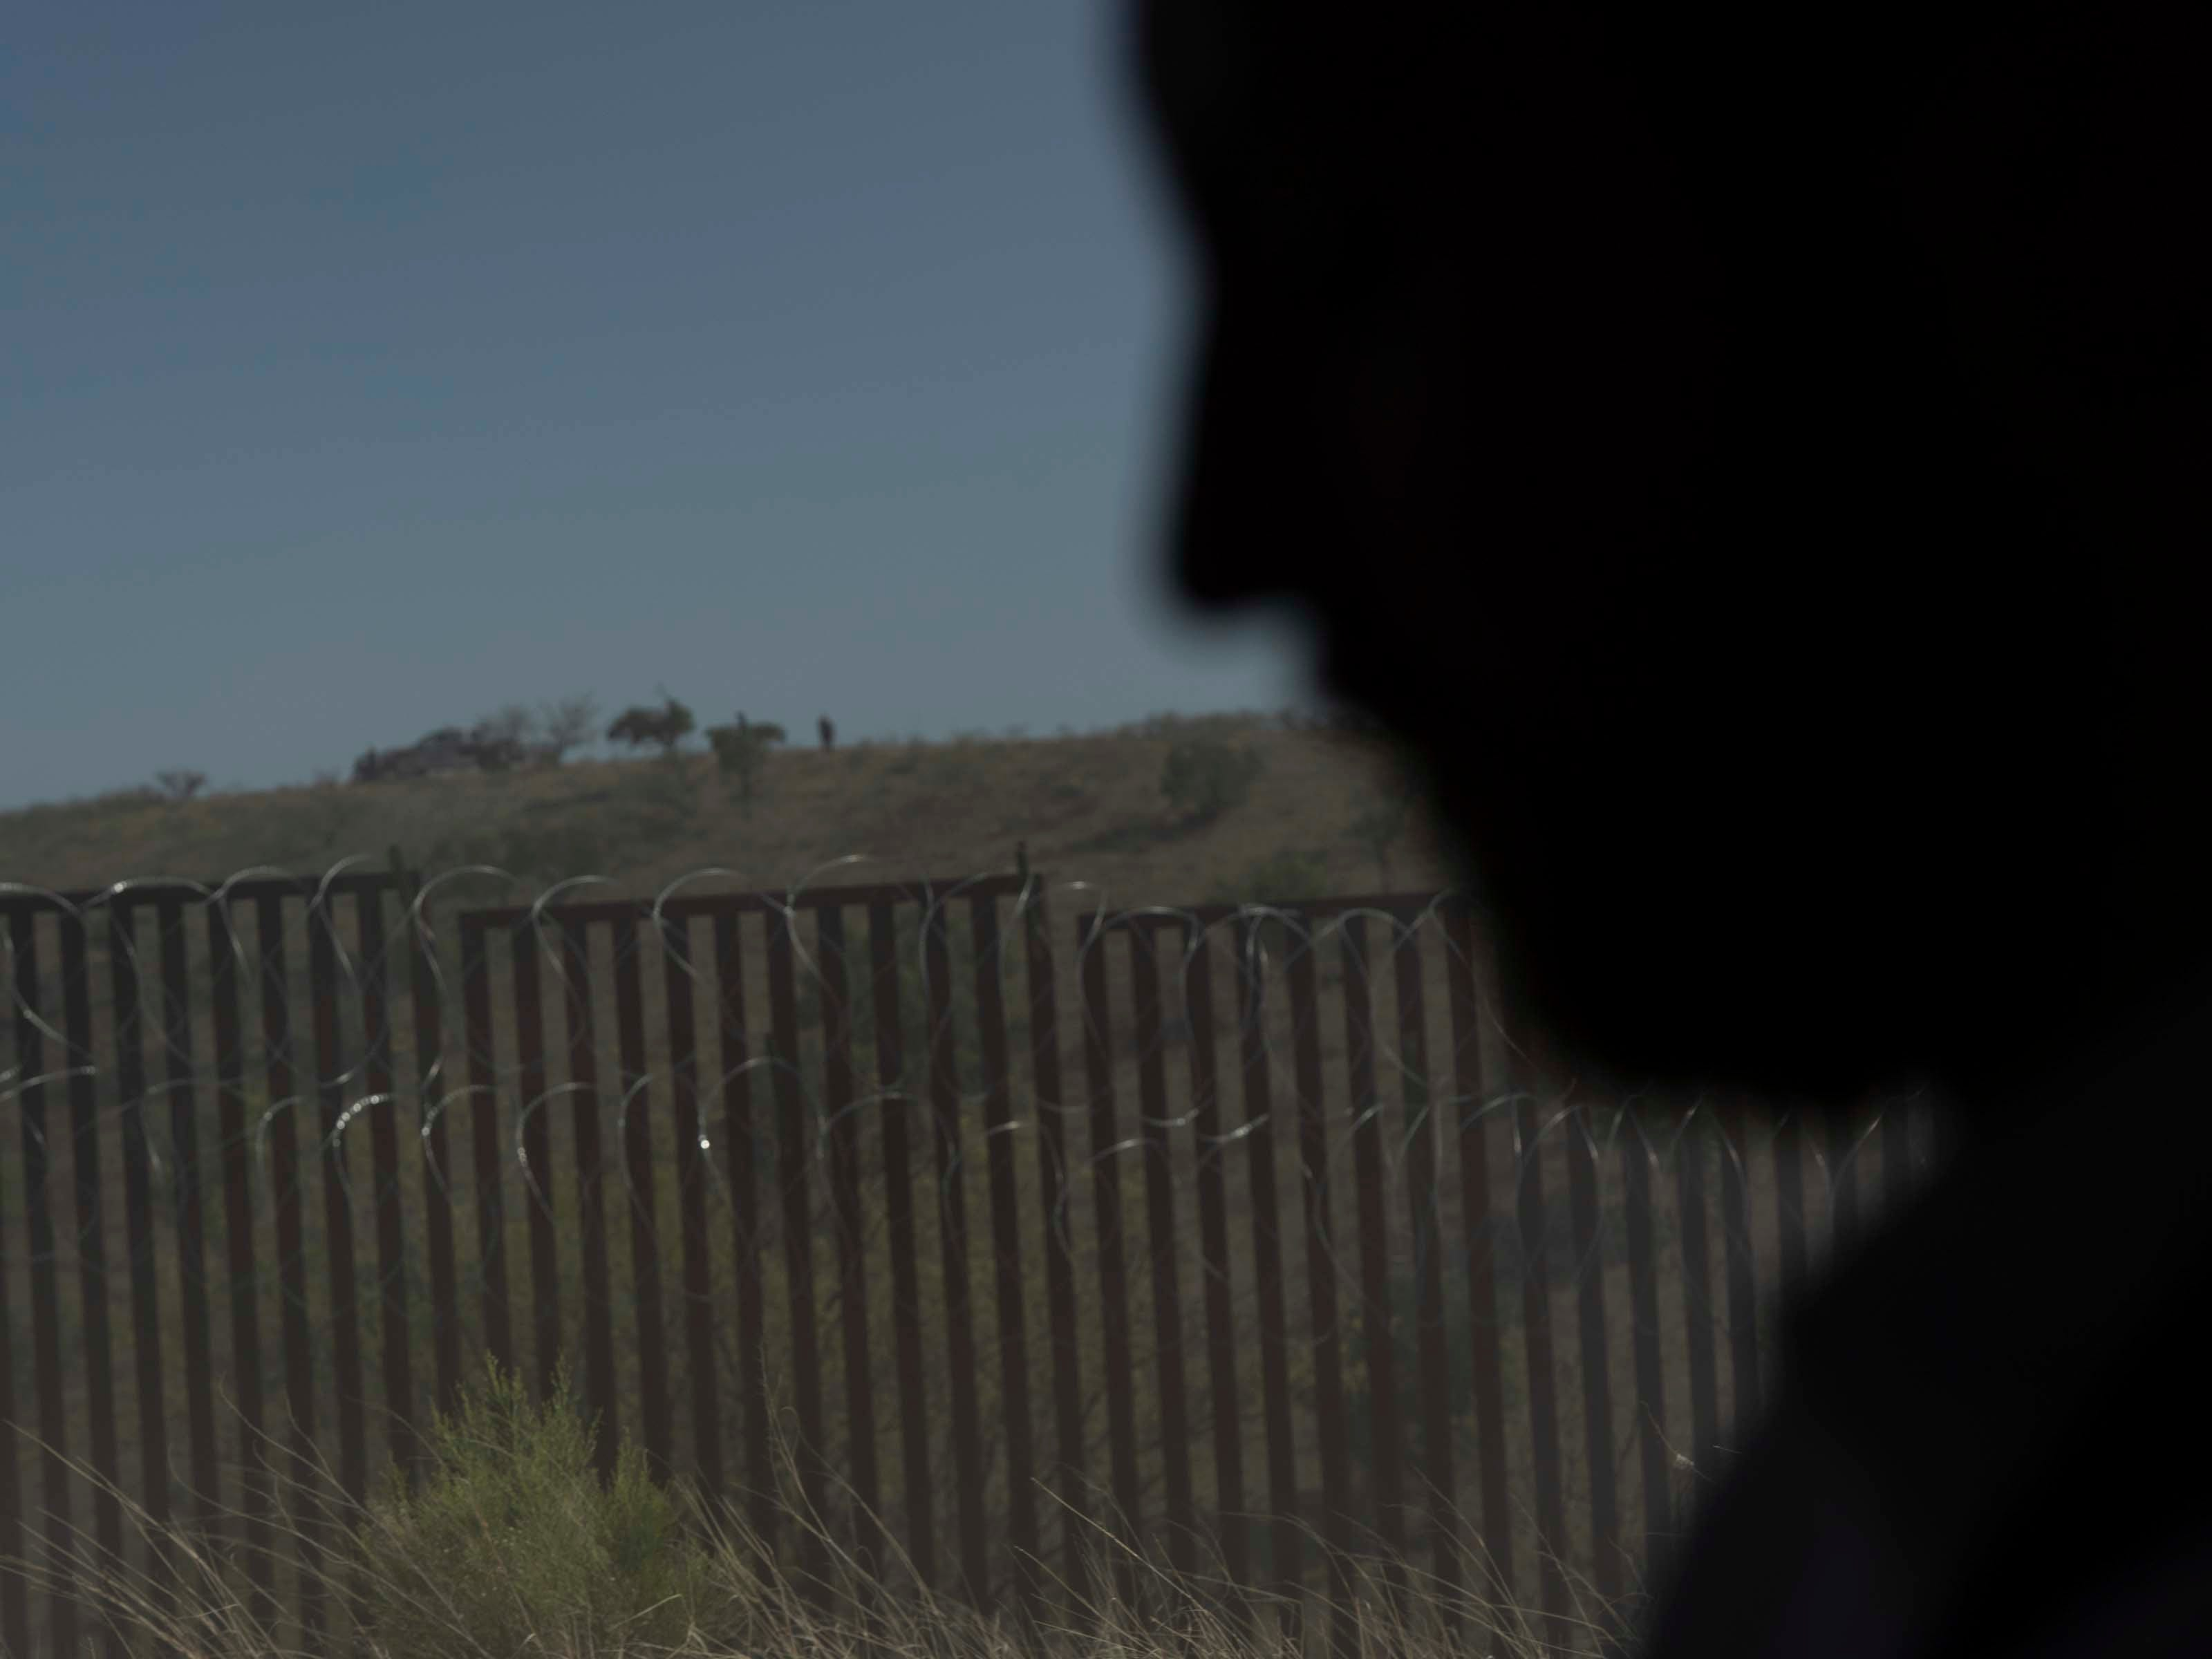 A Border Patrol agent watches Vice President Mike Pence and Arizona Gov. Doug Ducey's motorcade near the U.S.-Mexico border fence in Nogales, Ariz.